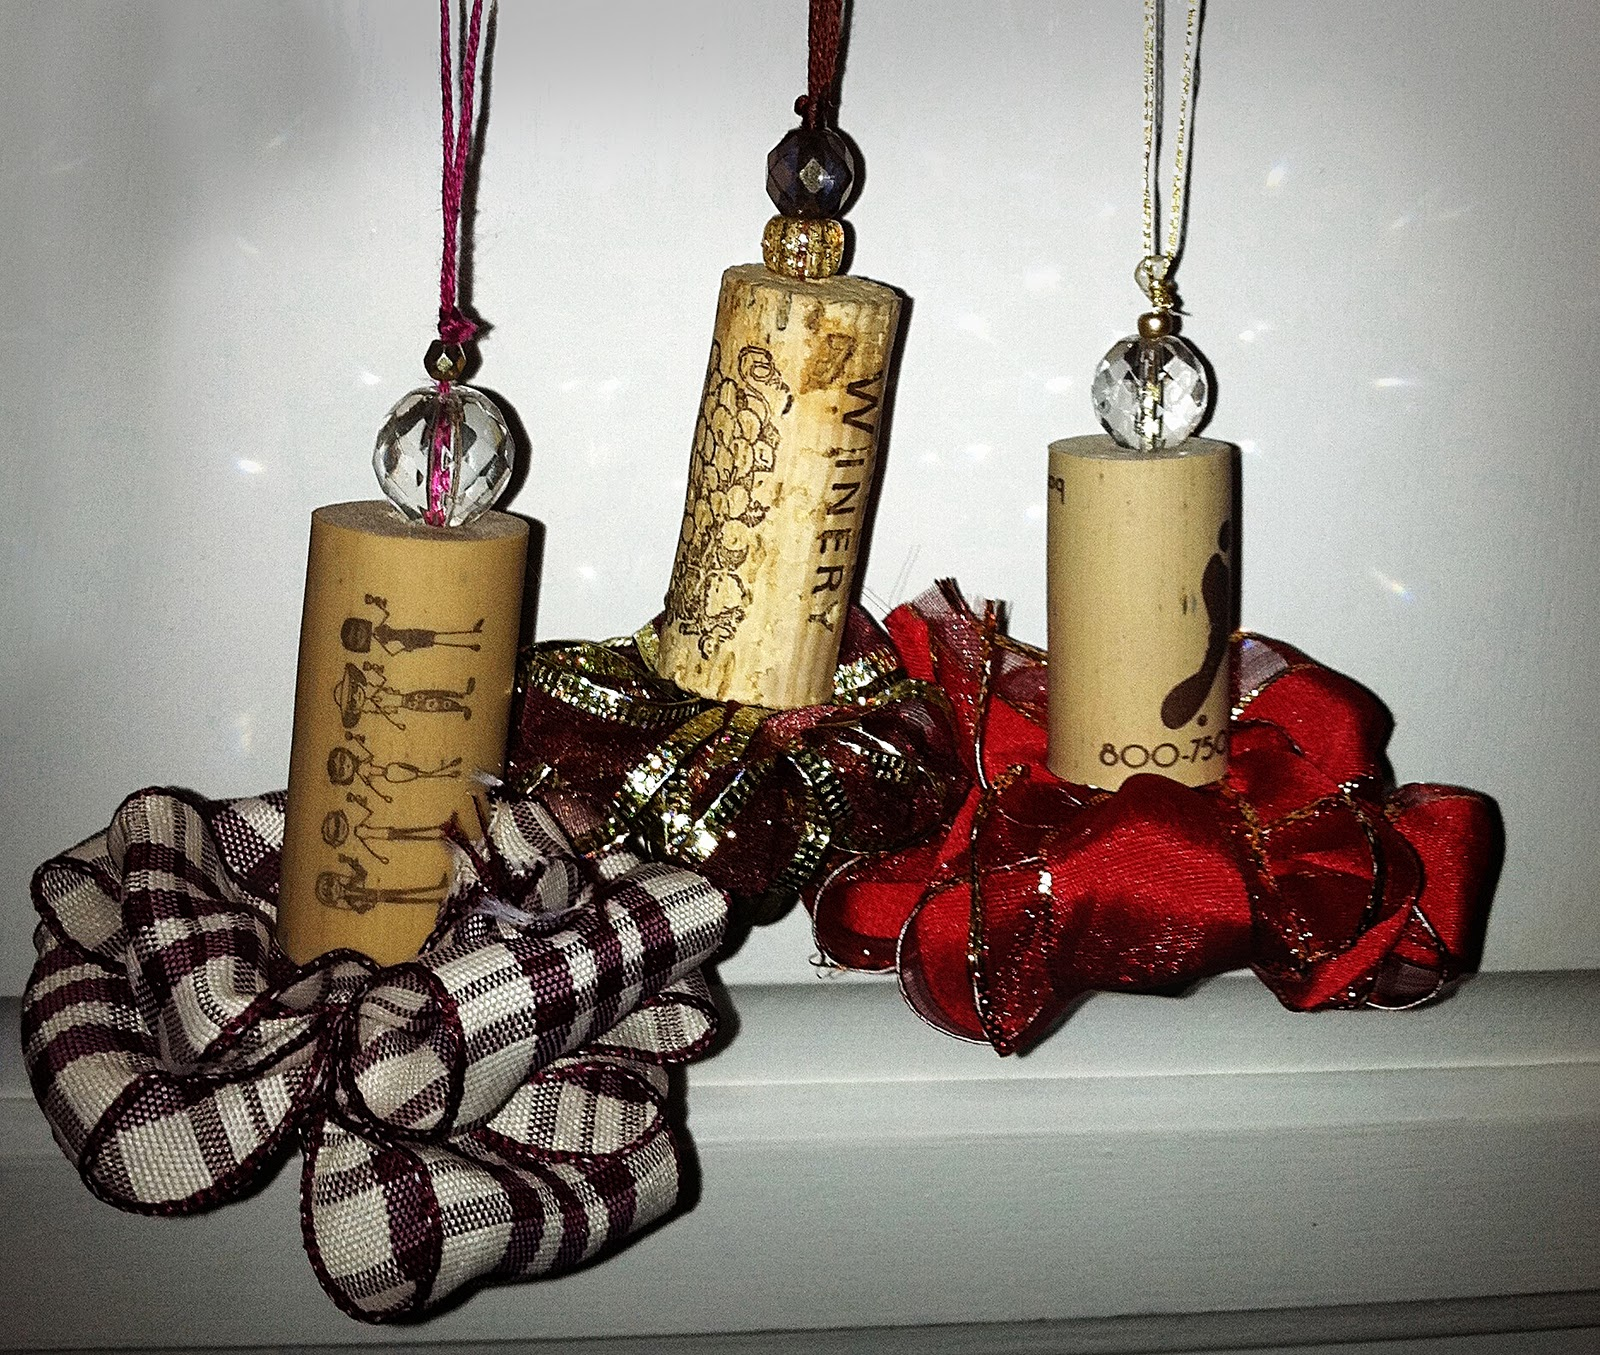 Ornaments made from wine corks - I Was Able To Make These Recycled Wine Cork Ornaments To Commemorate Some Special Moments With My Kathy My Mikey And My Denise